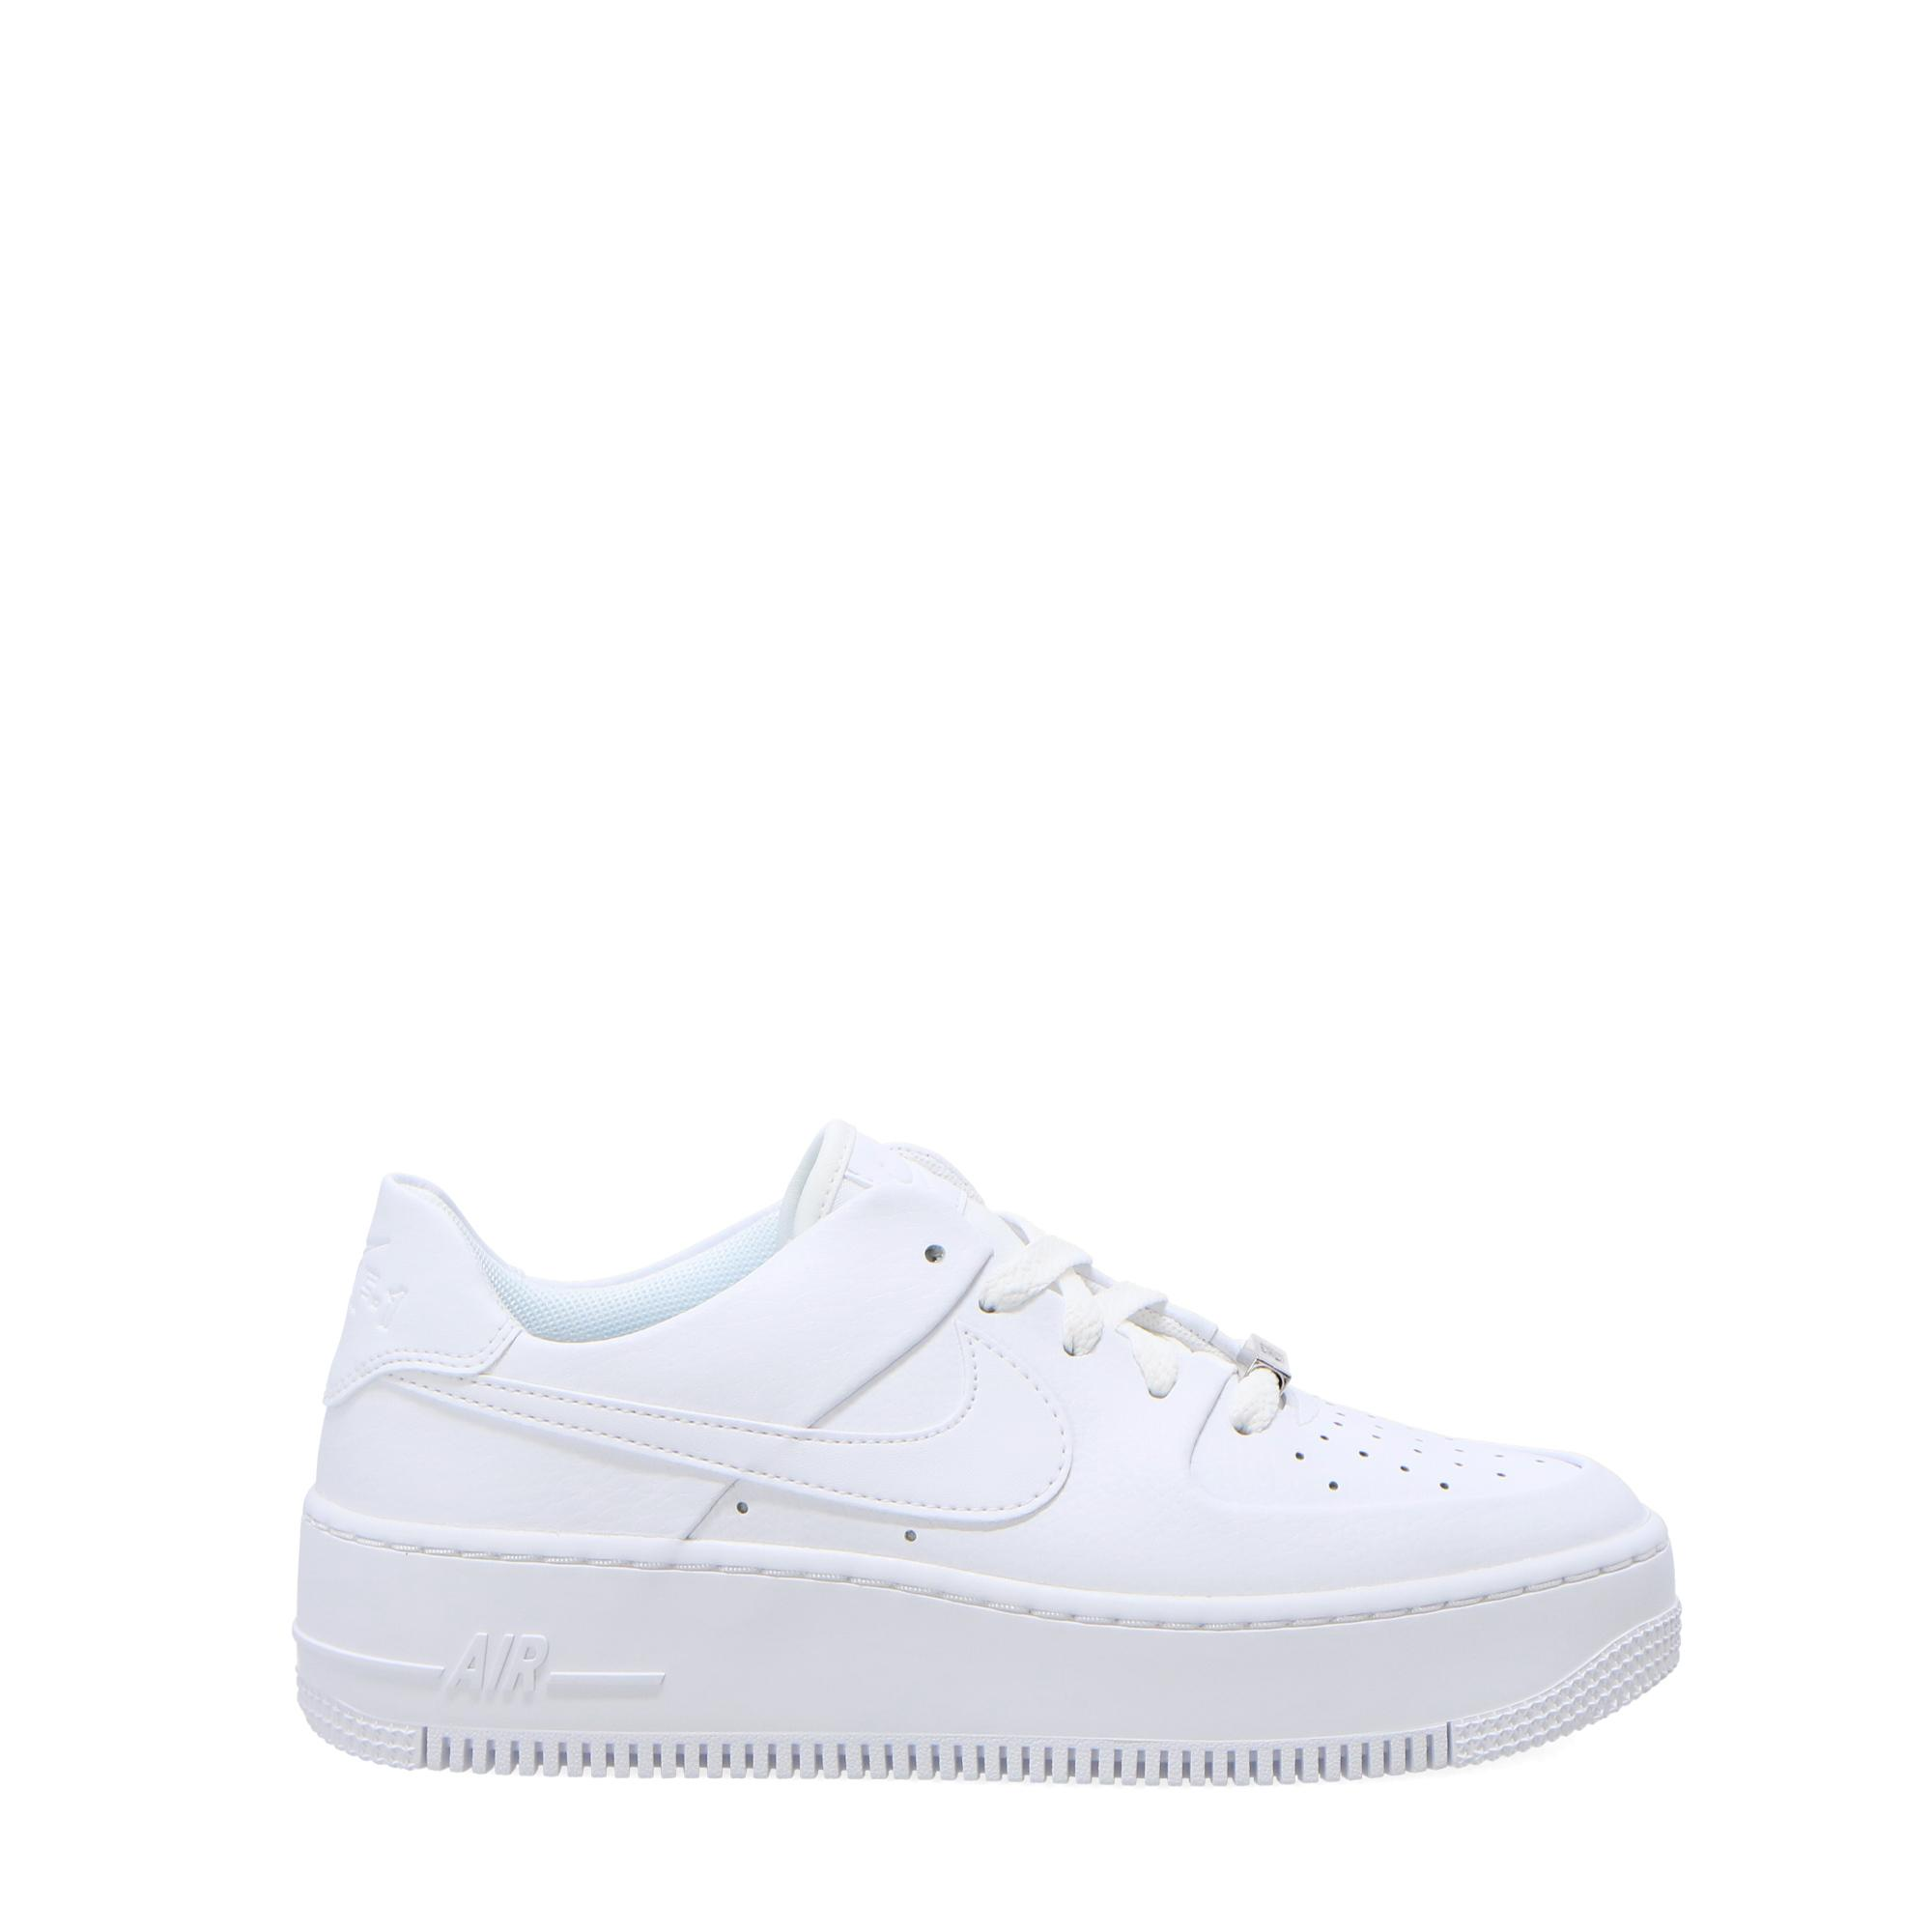 new product 51ad1 72bd5 NIKE AIR FORCE 1 SAGE PRM